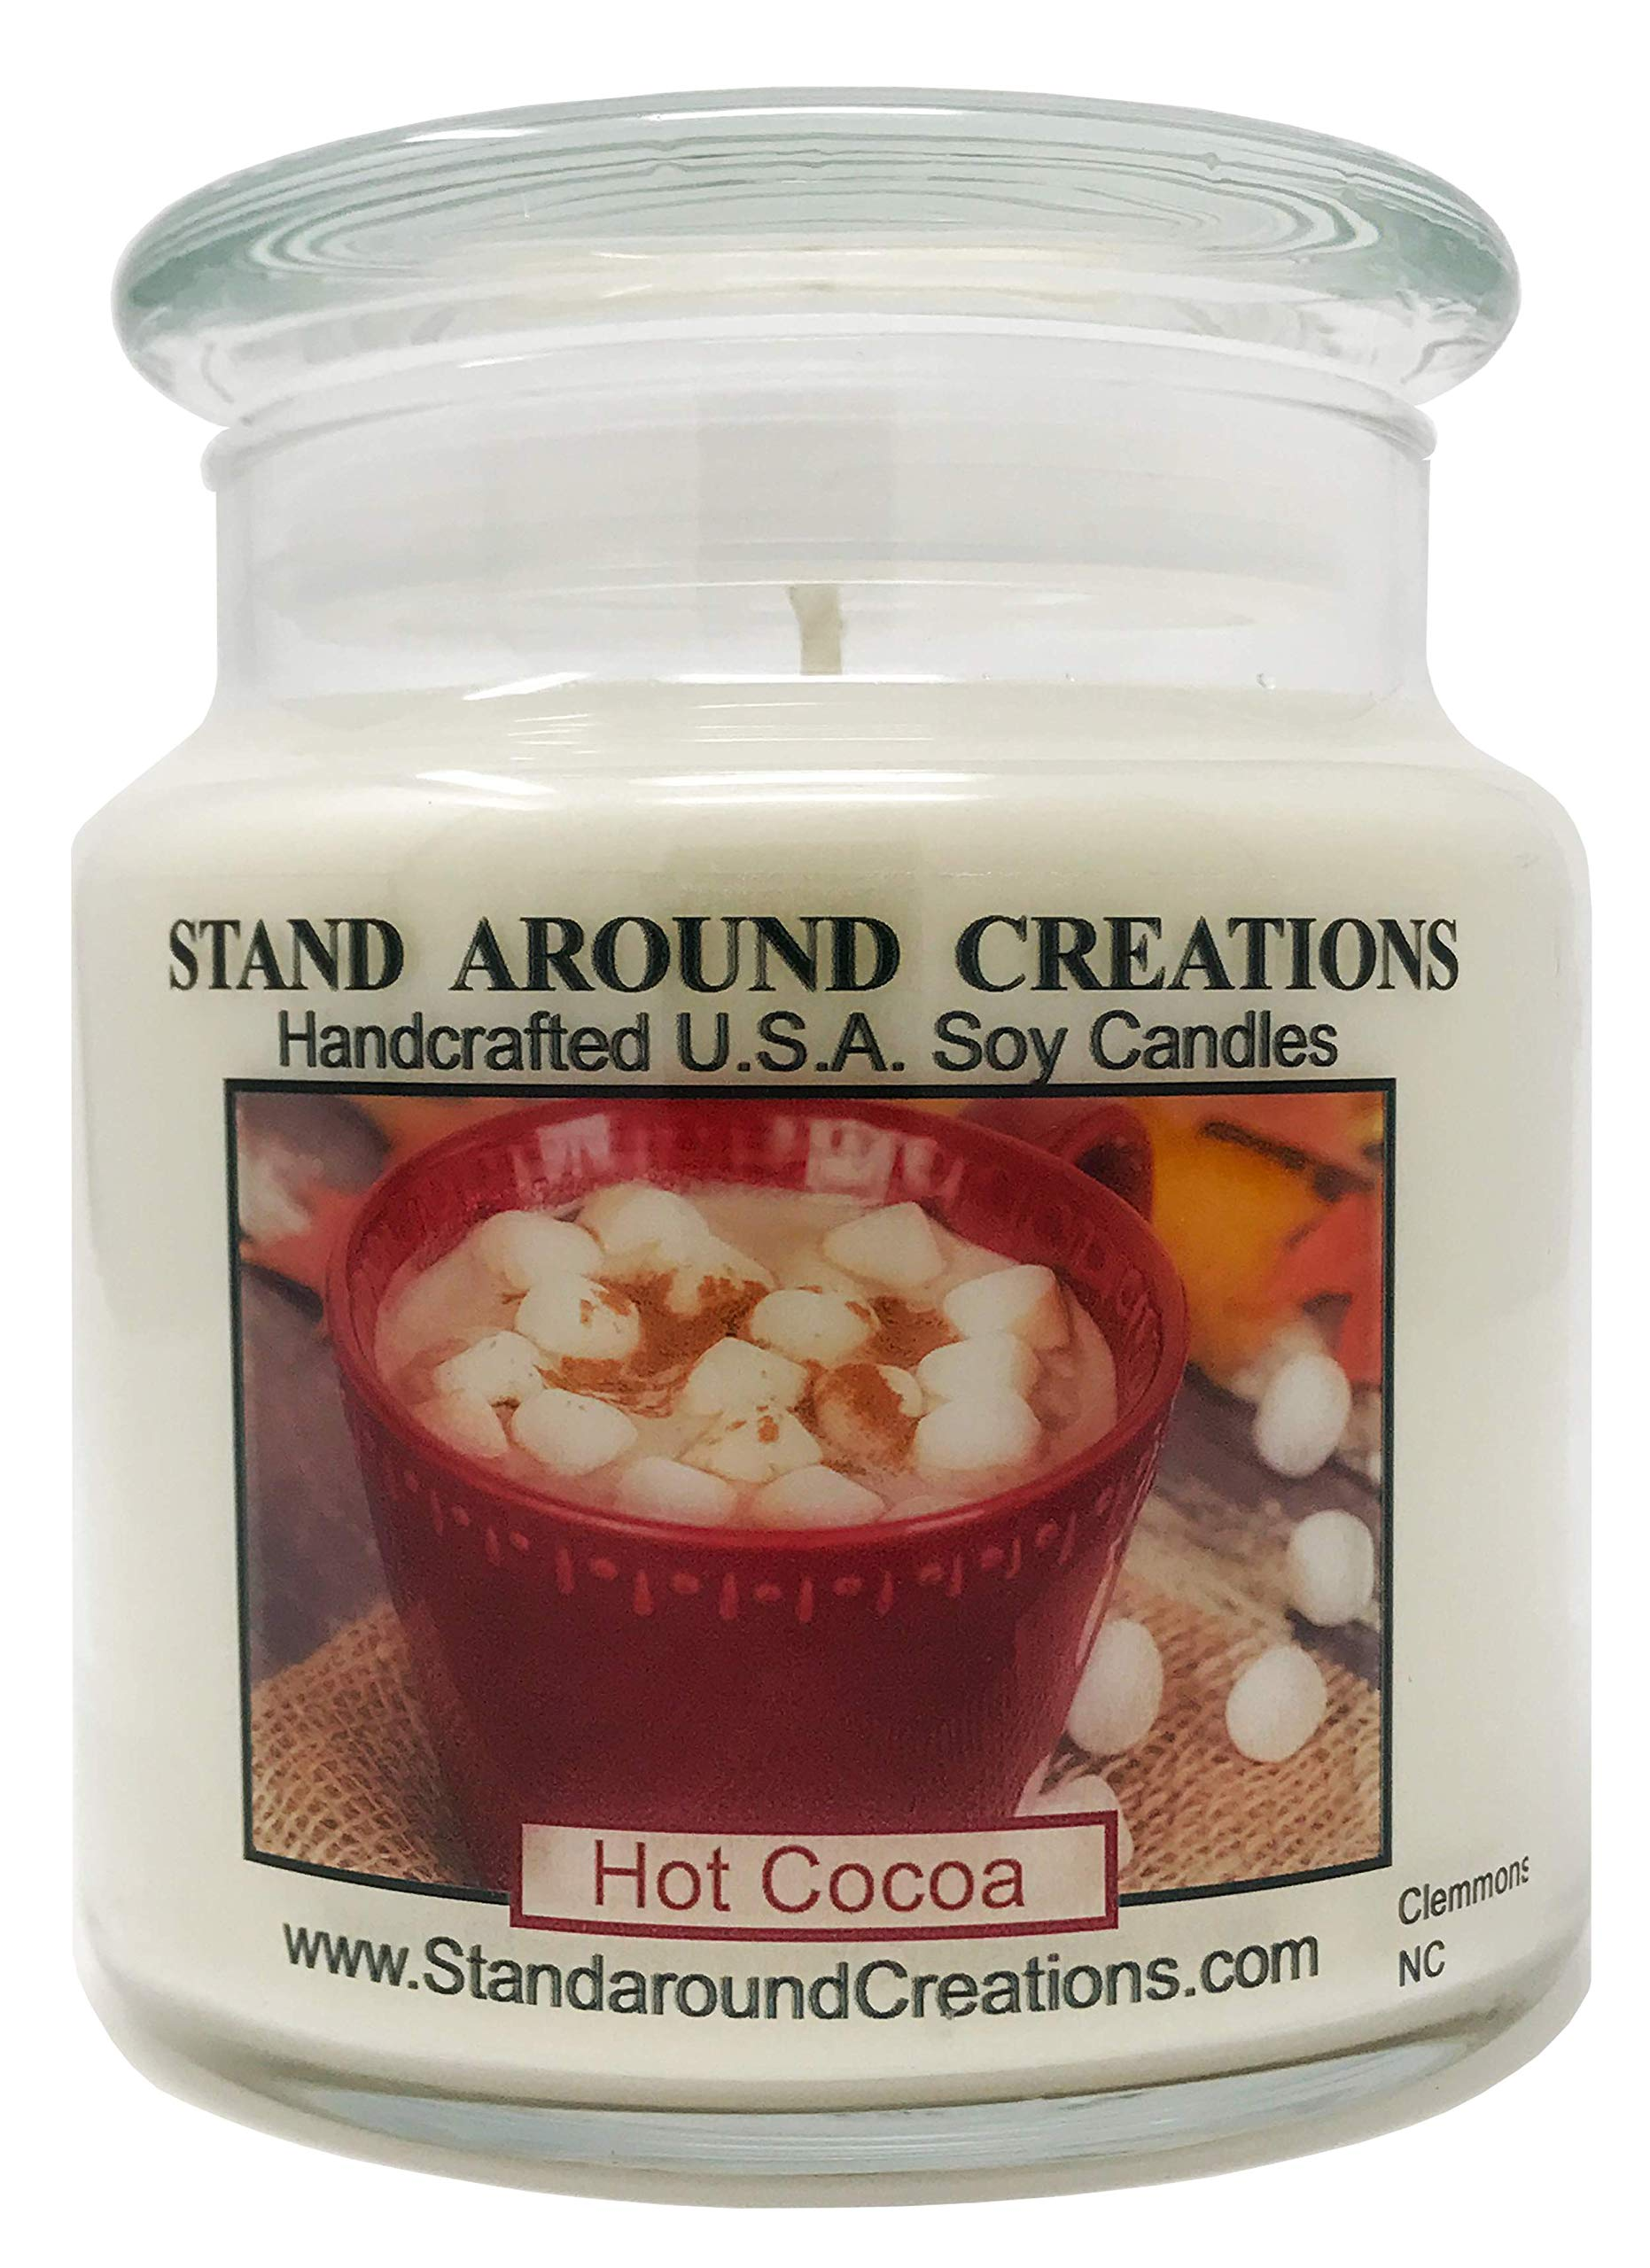 Premium 100% Soy Apothecary Candle - 16 oz - Scent: Hot Cocoa - Warm hot chocolate w/melted marshmallow topping.